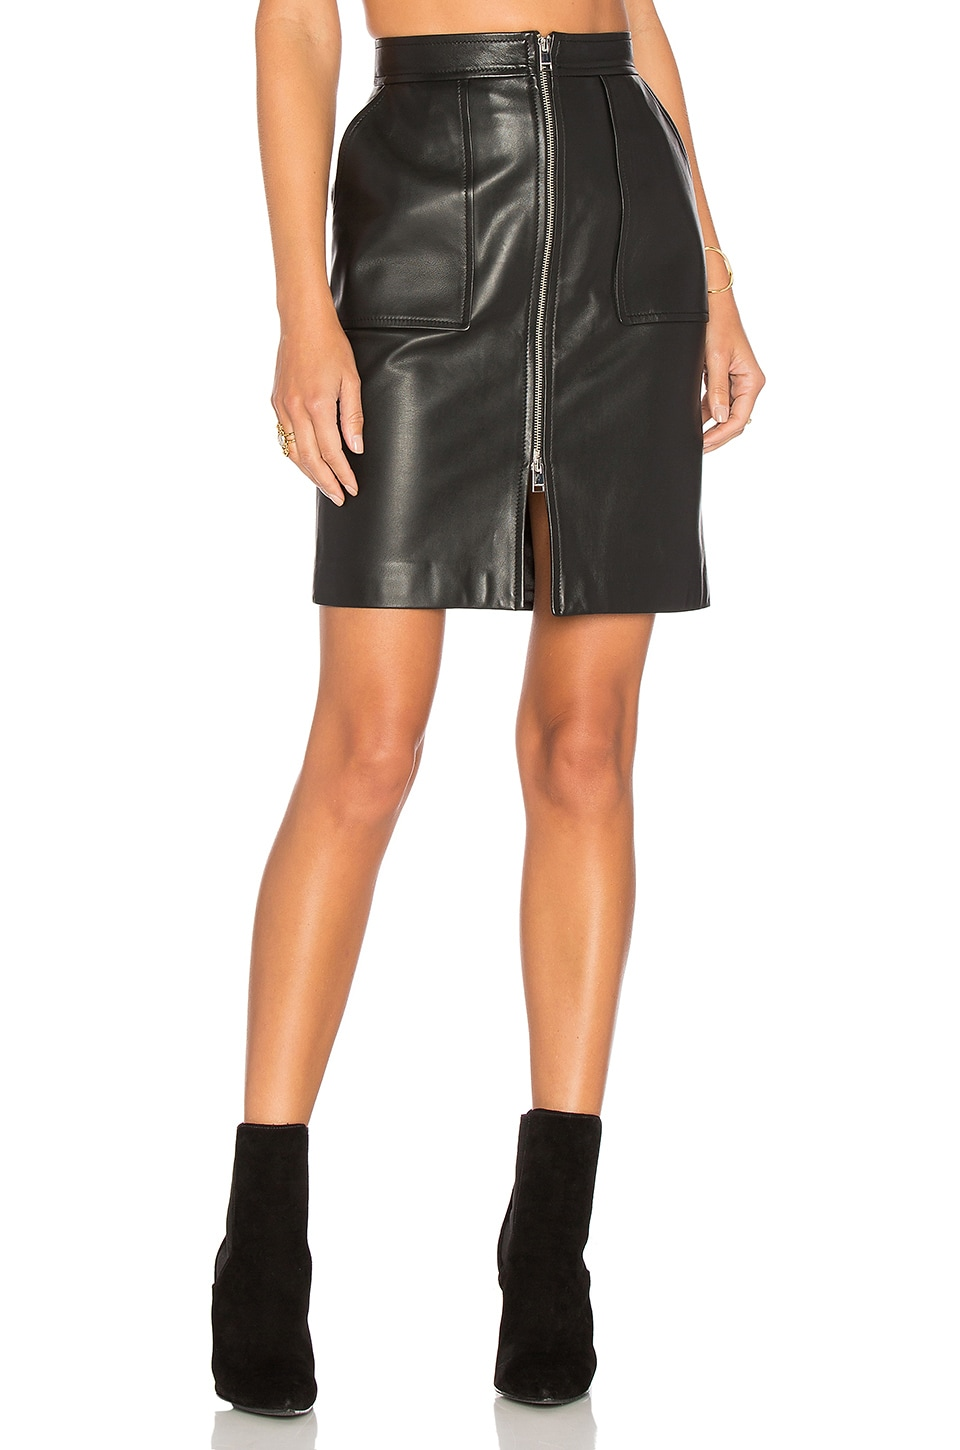 LAMARQUE Amber L Pencil Skirt in Black